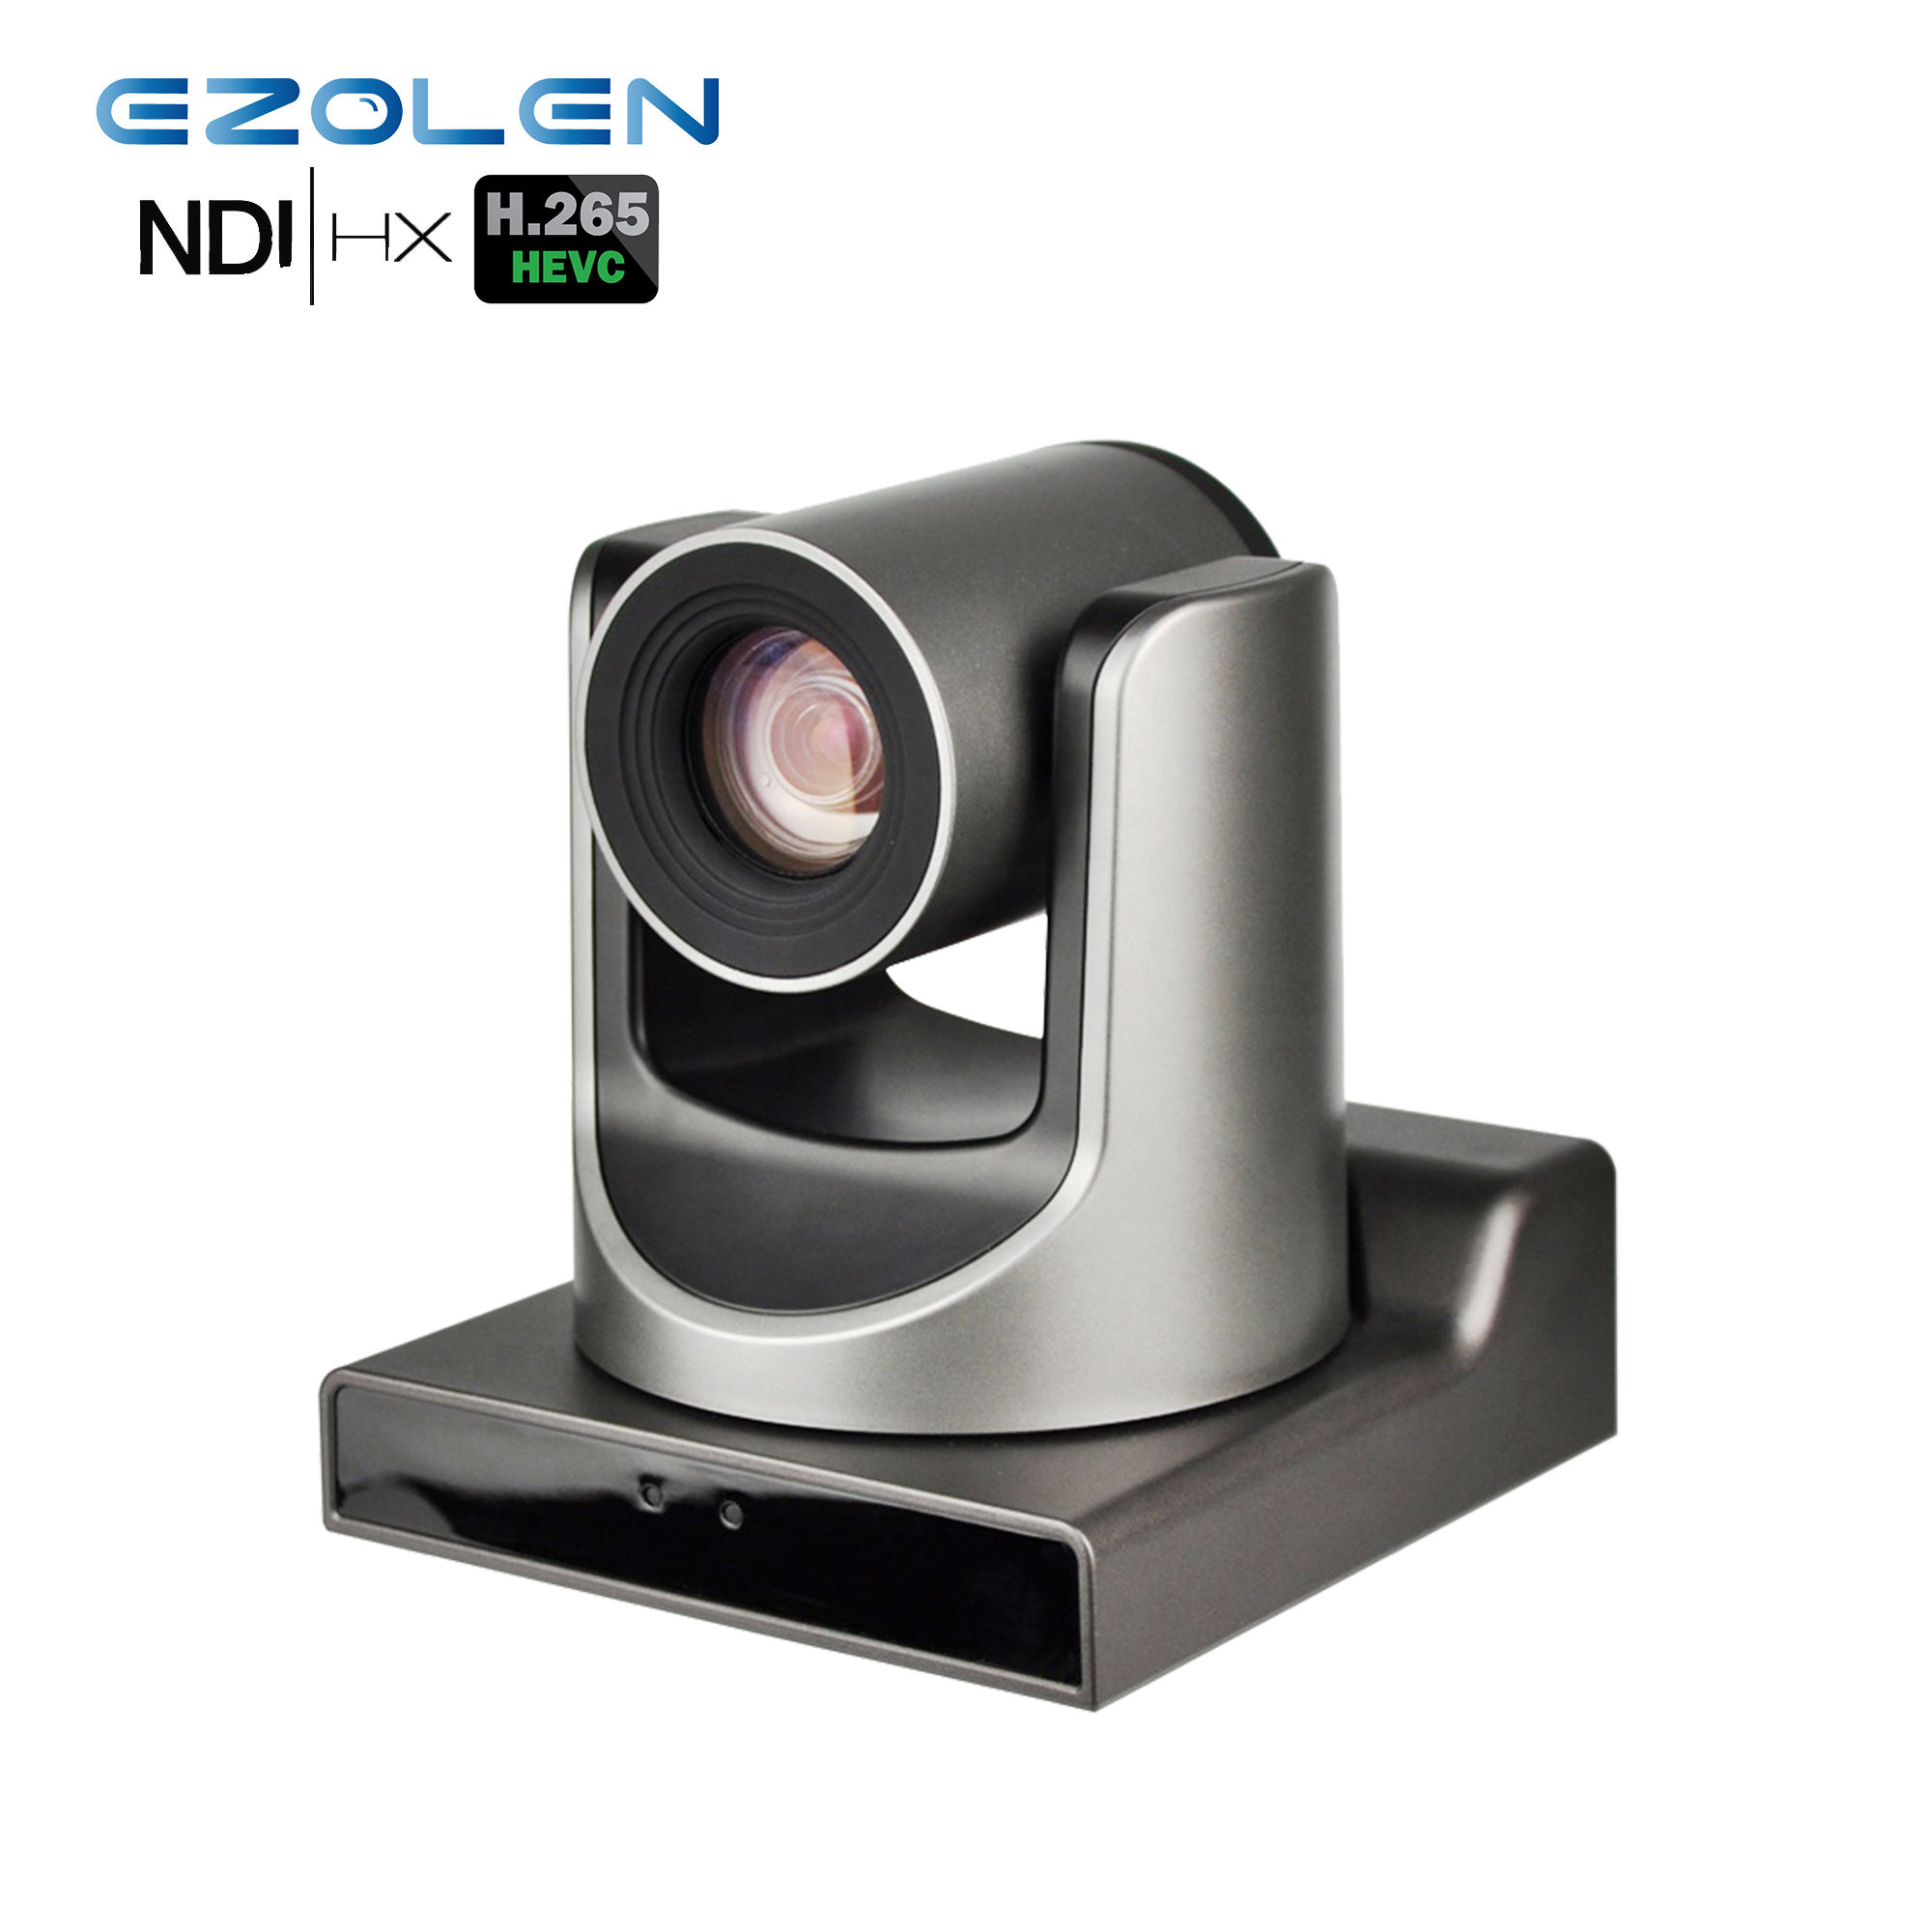 NDI | HX 20X HD SDI PTZ Camera Video Professional IP NDI Camera for Broadcasting Video Conferencing Solution from EZOLEN